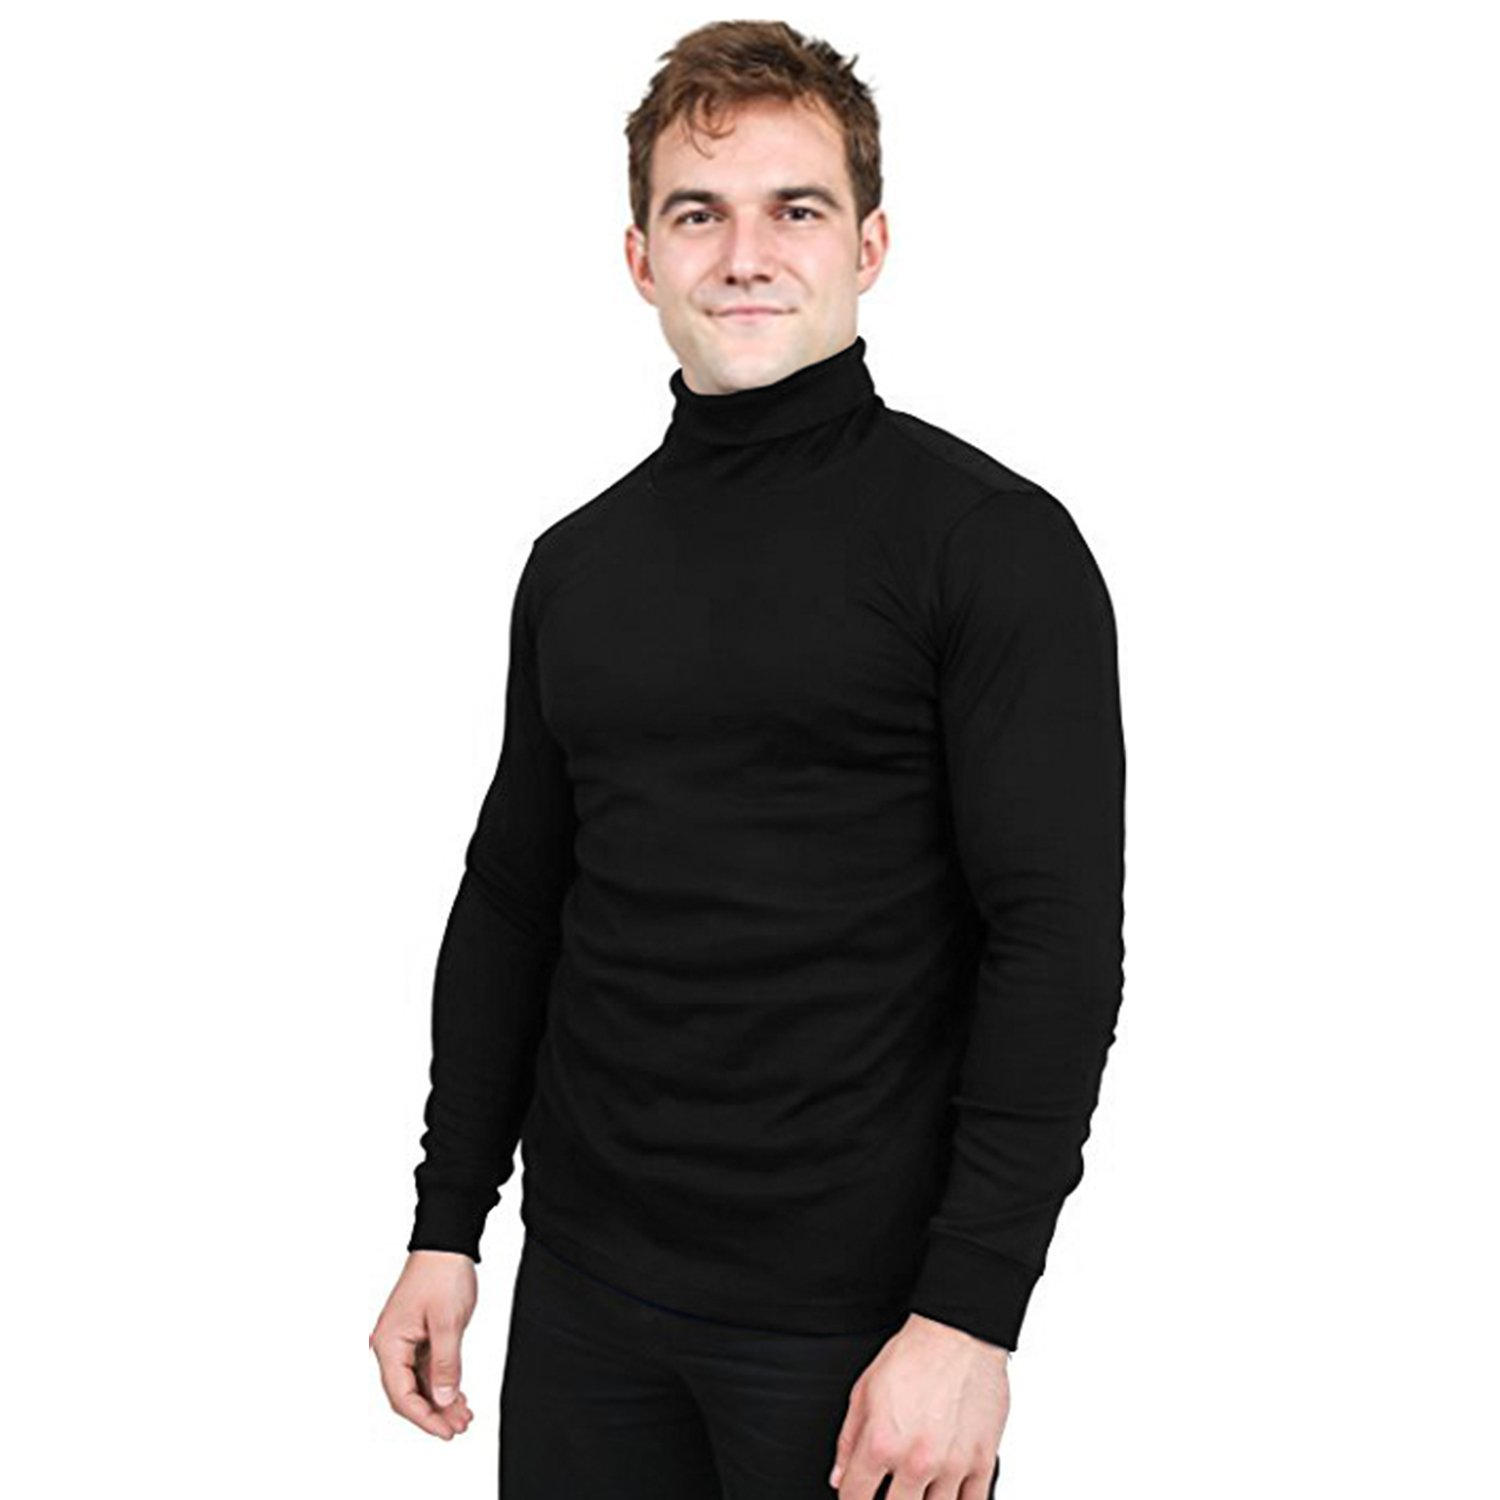 Utopia Wear Premium Cotton Blend Interlock Turtleneck Men T Shirt At